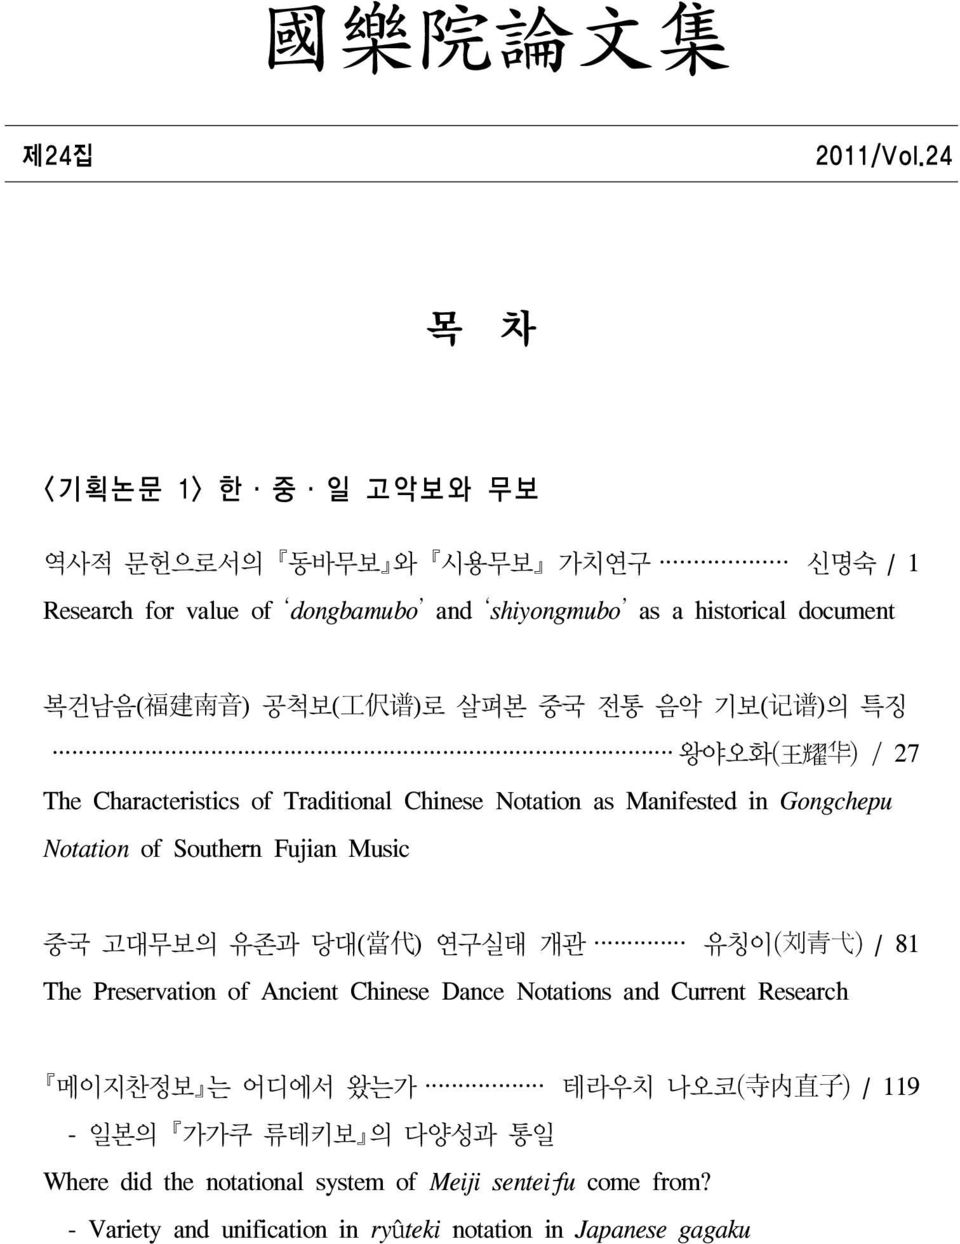 )로 살펴본 중국 전통 음악 기보( 记 谱 )의 특징 왕야오화( 王 耀 华 ) / 27 The Characteristics of Traditional Chinese Notation as Manifested in Gongchepu Notation of Southern Fujian Music 중국